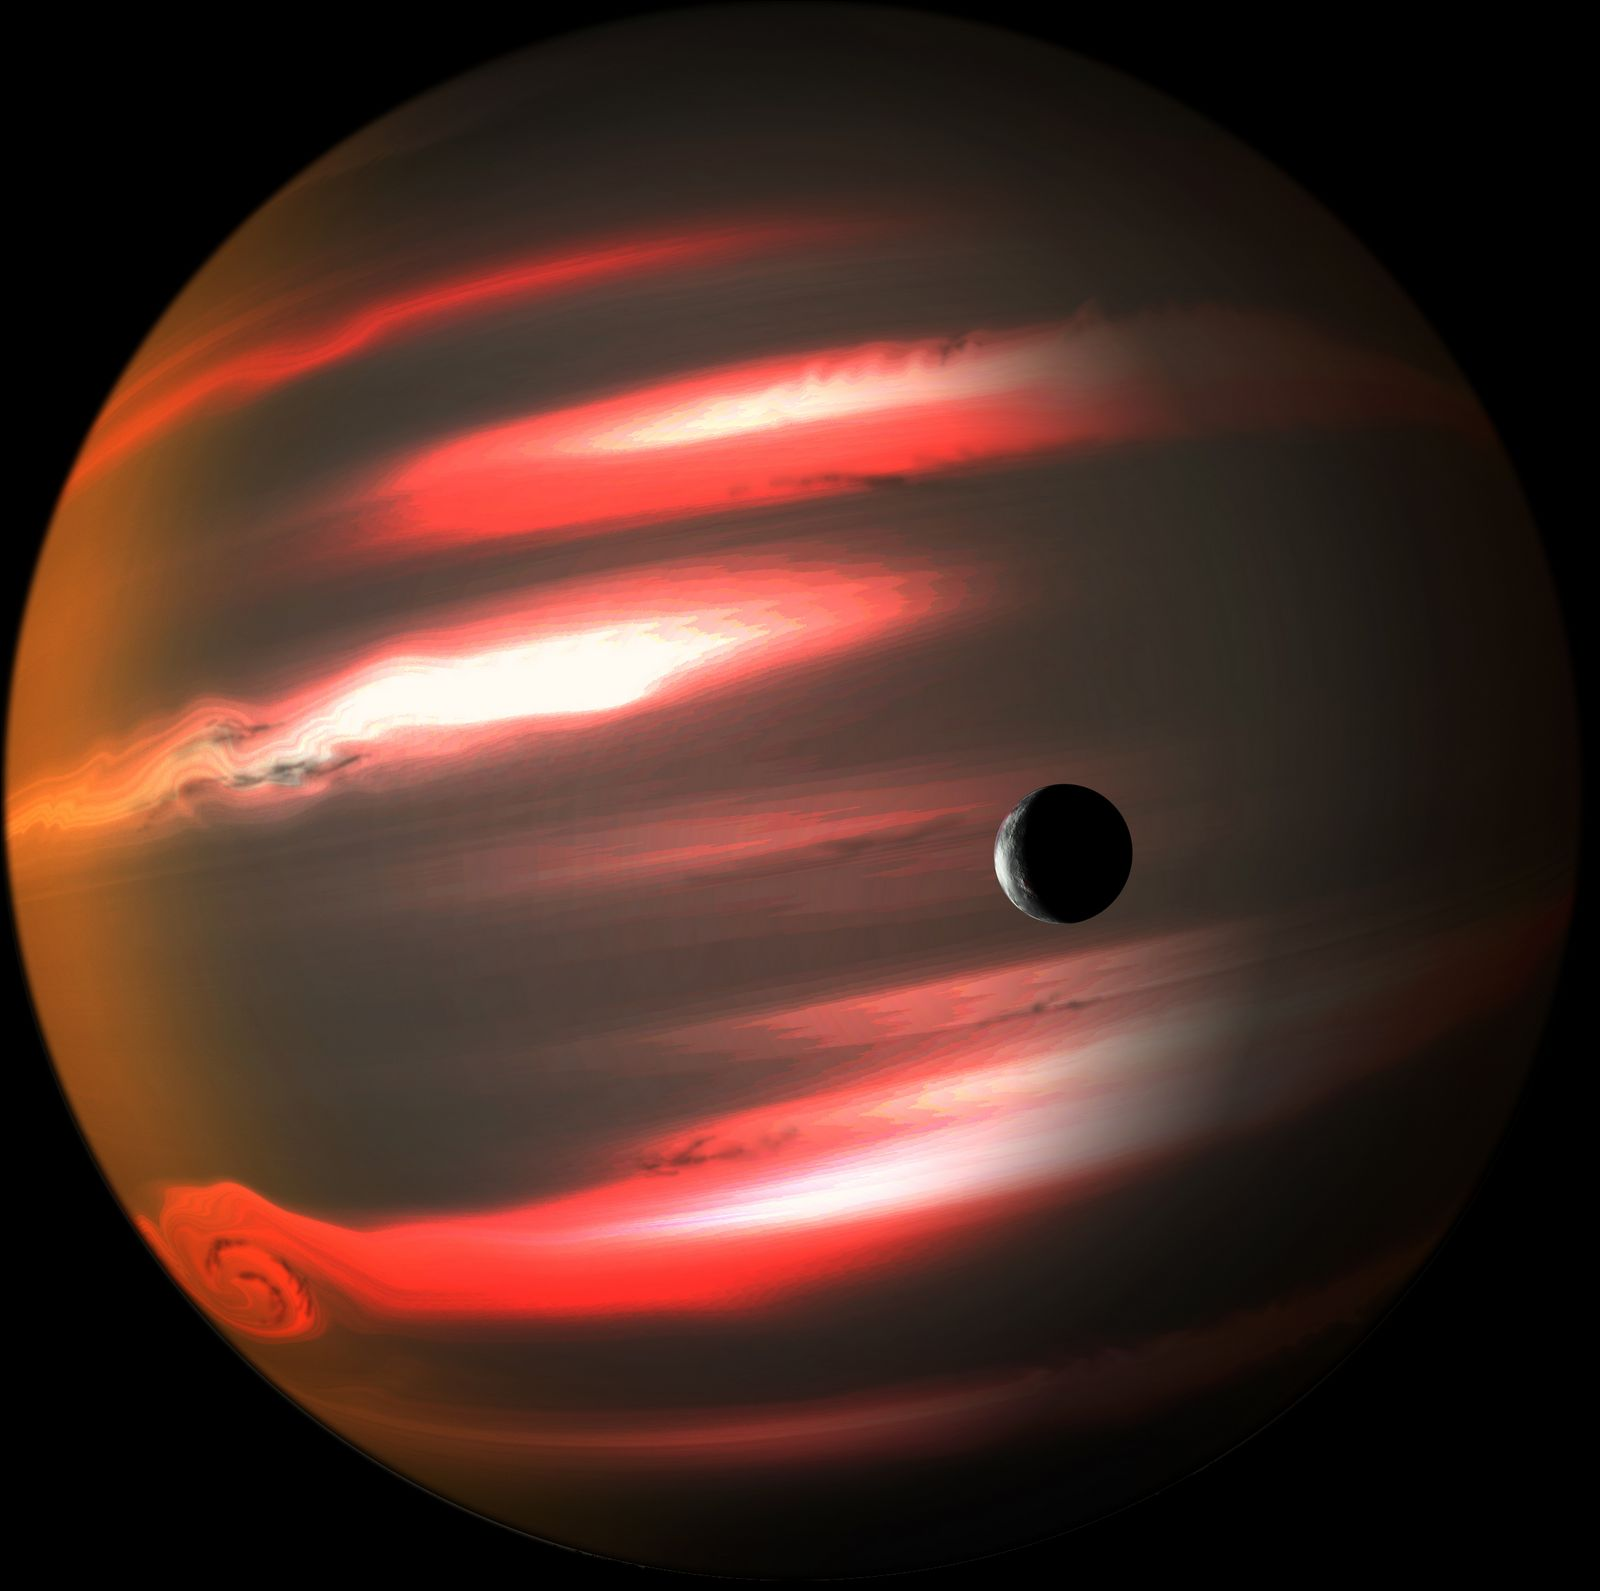 Premise Indicator Words: Beyond Earthly Skies: Jet-Black Exoplanet